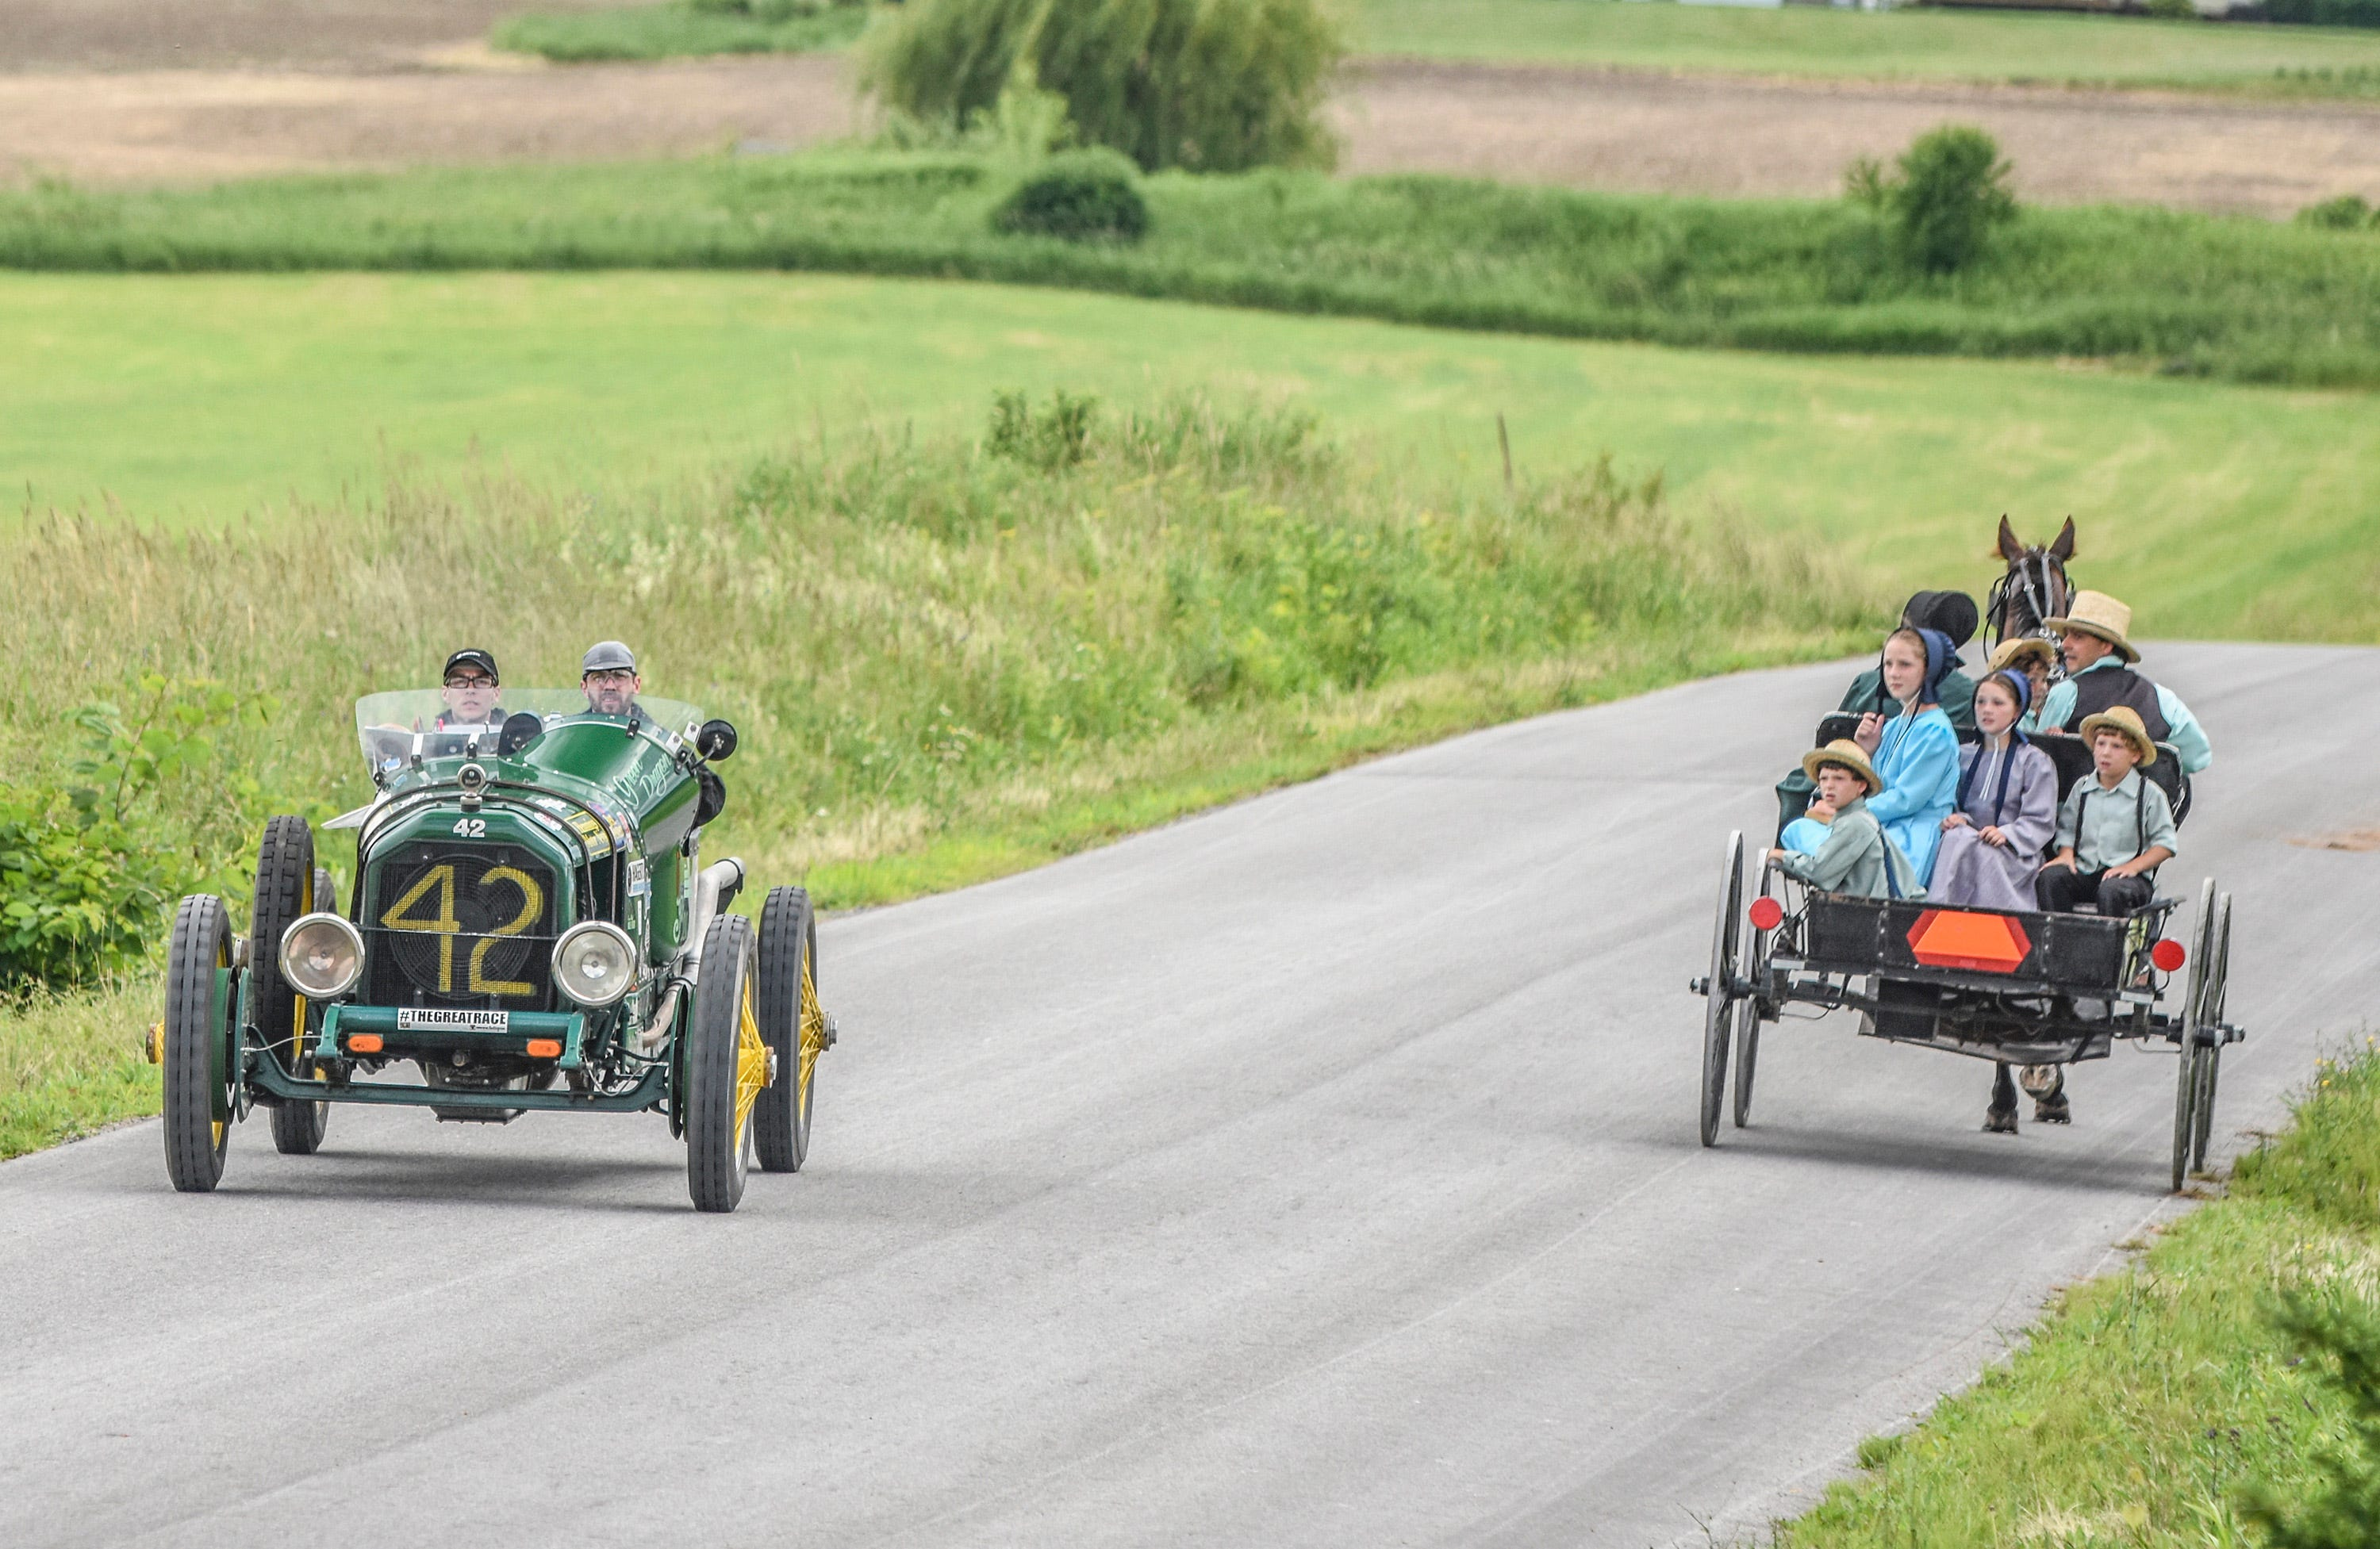 The Hemmings Motor News Great Race presented by Hagerty Drivers Club is COMING SOON!